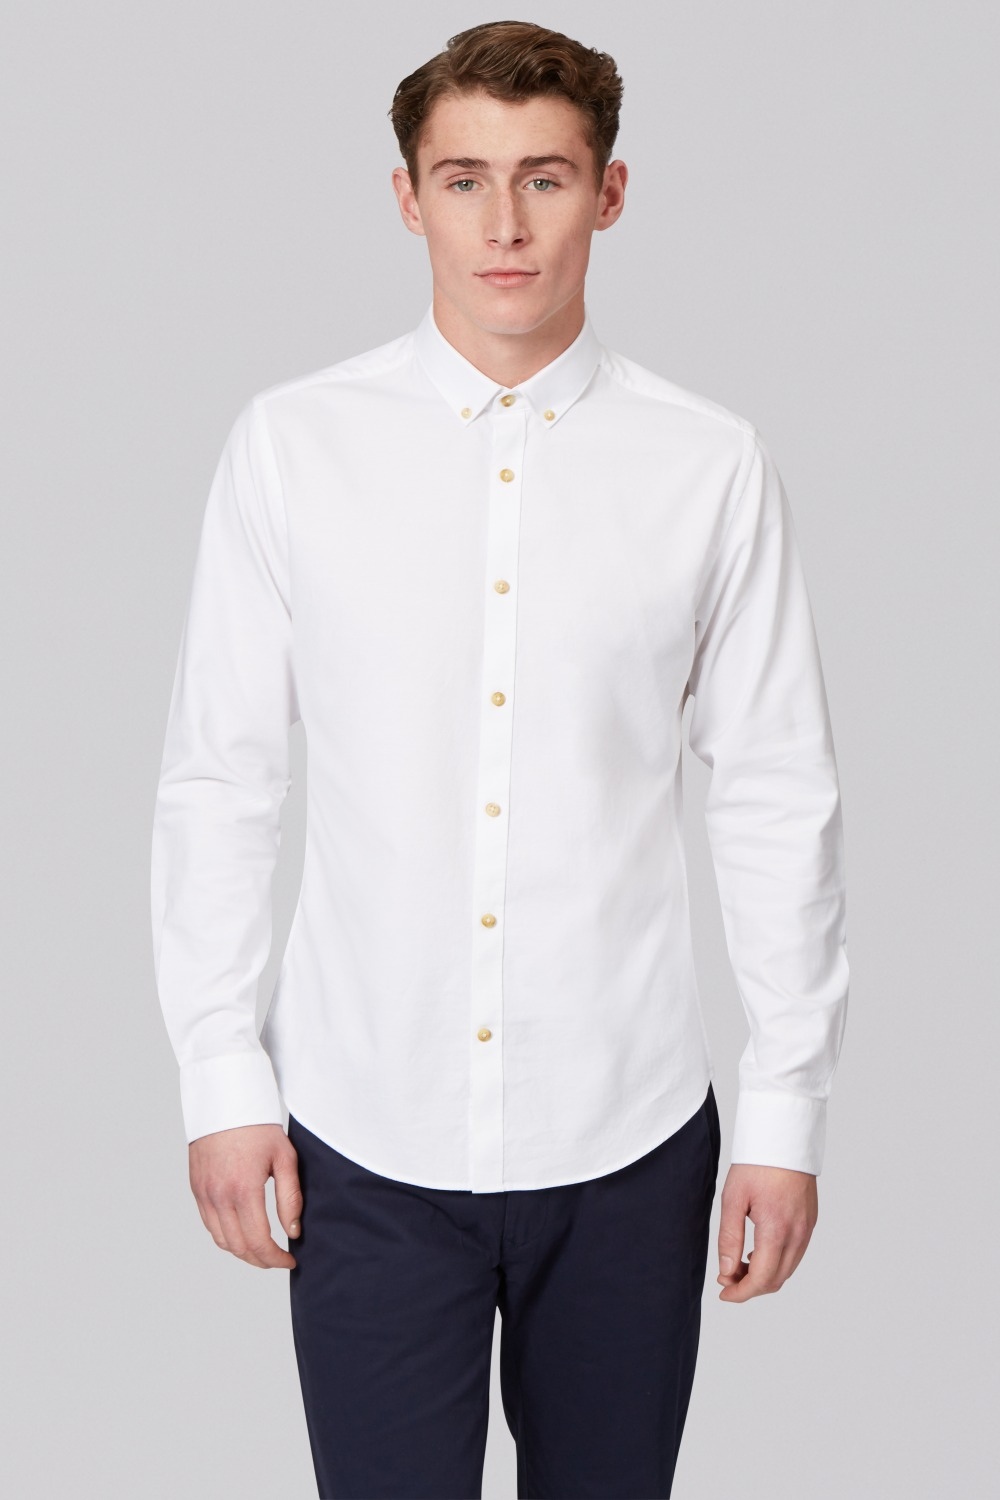 new arriving 100 cotton custom made white oxford button